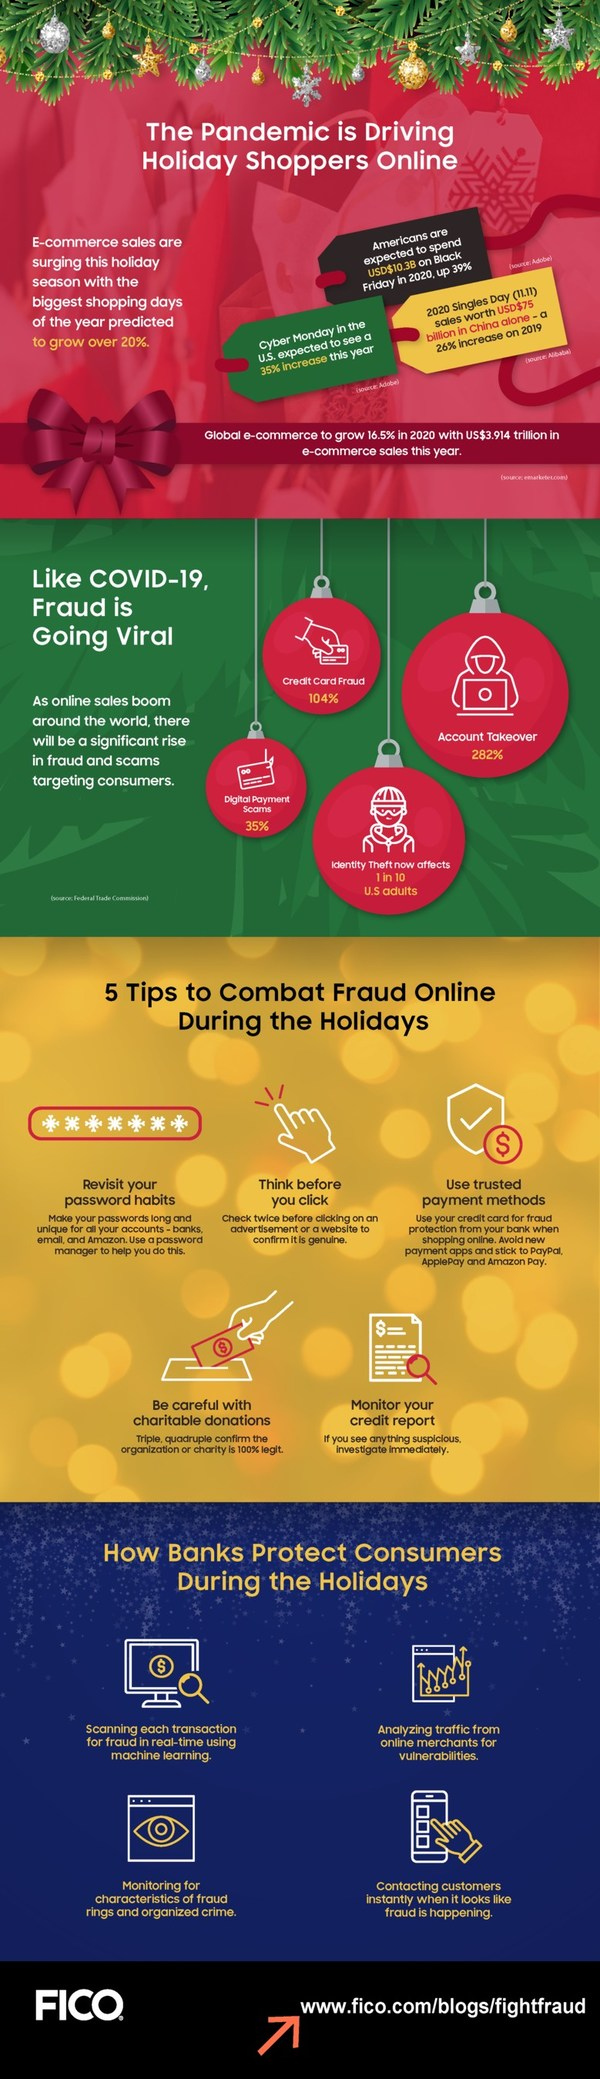 5 Tips to Combat Fraud Online During the Holidays